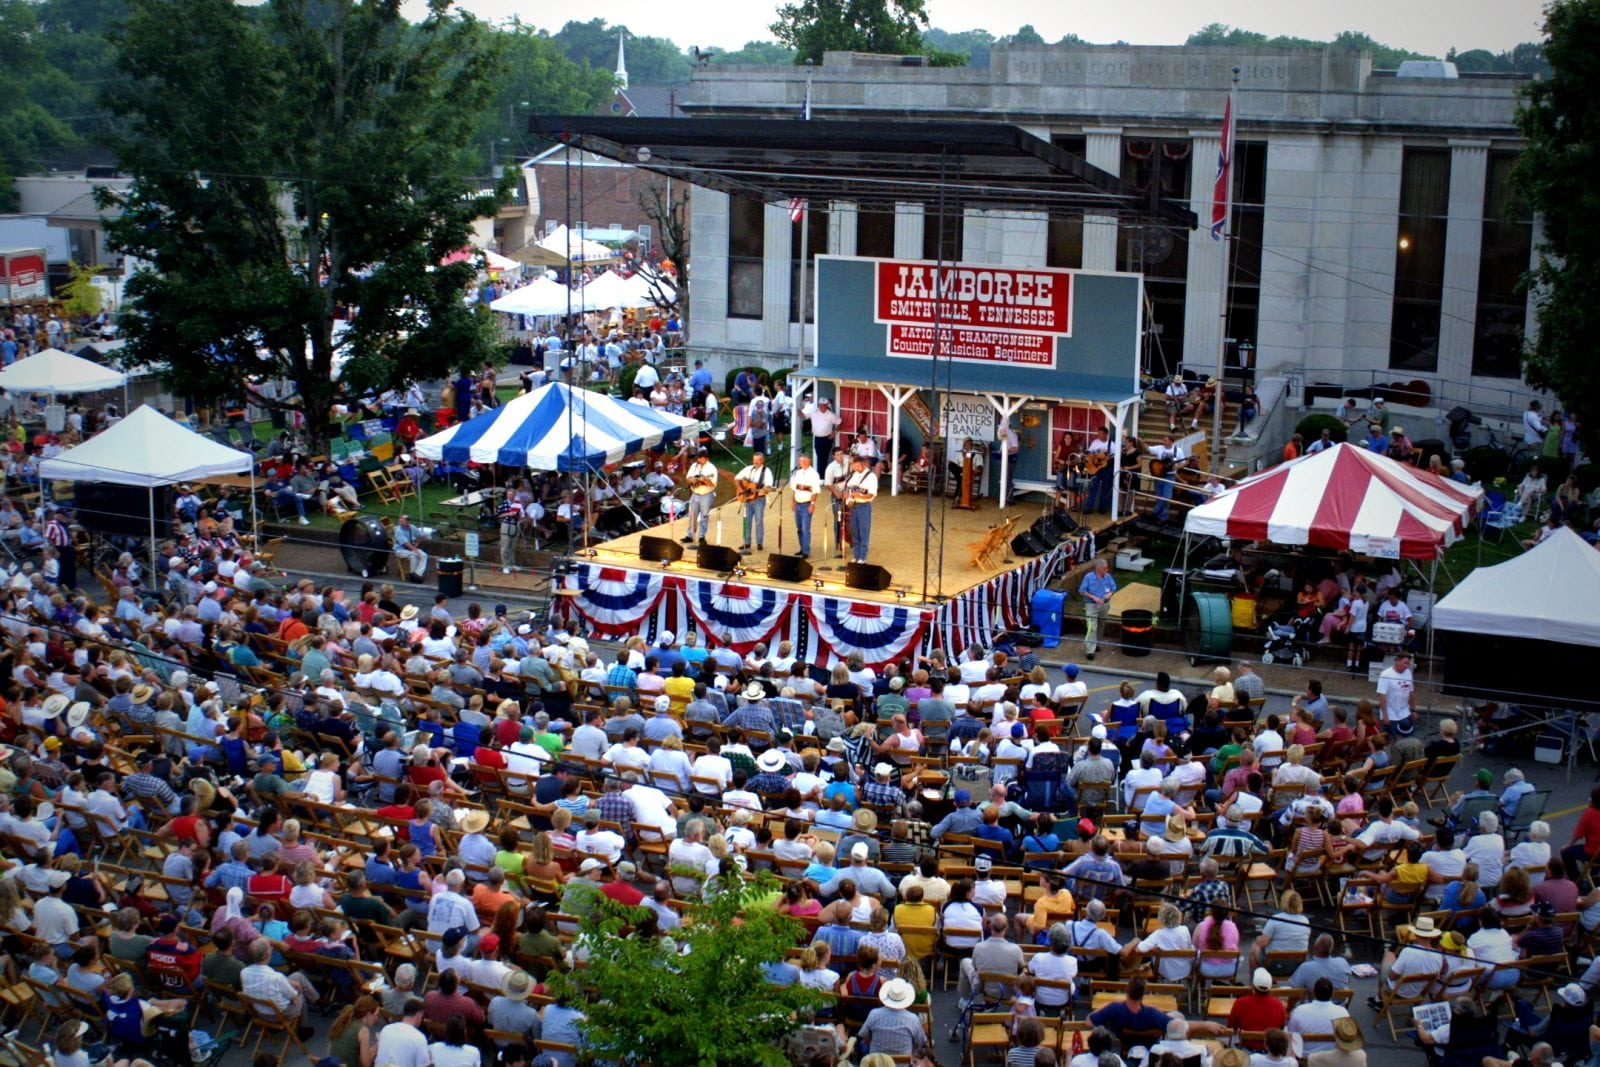 46th annual smithville fiddlers jamboree and crafts